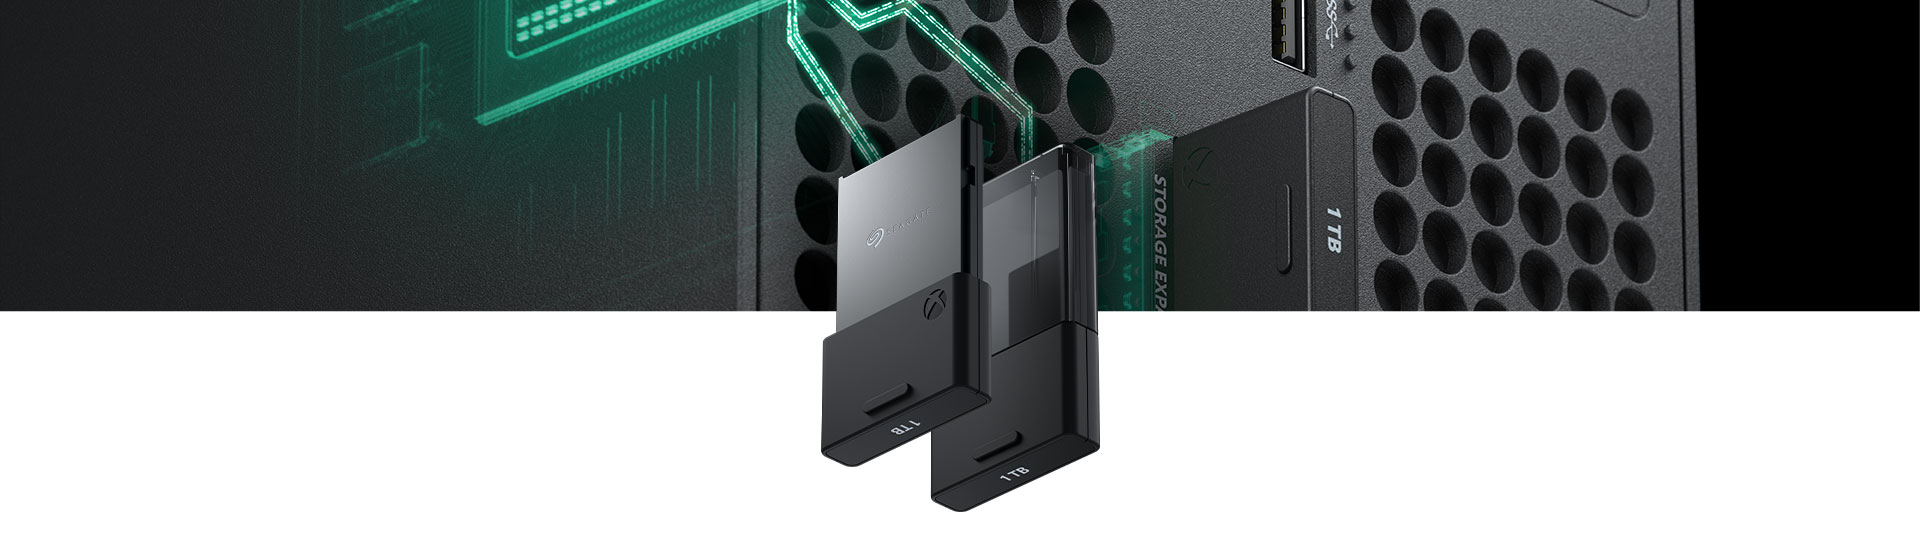 Seagate Storage Expansion Card for Xbox Series X with a close-up of card inserted into an Xbox Series X